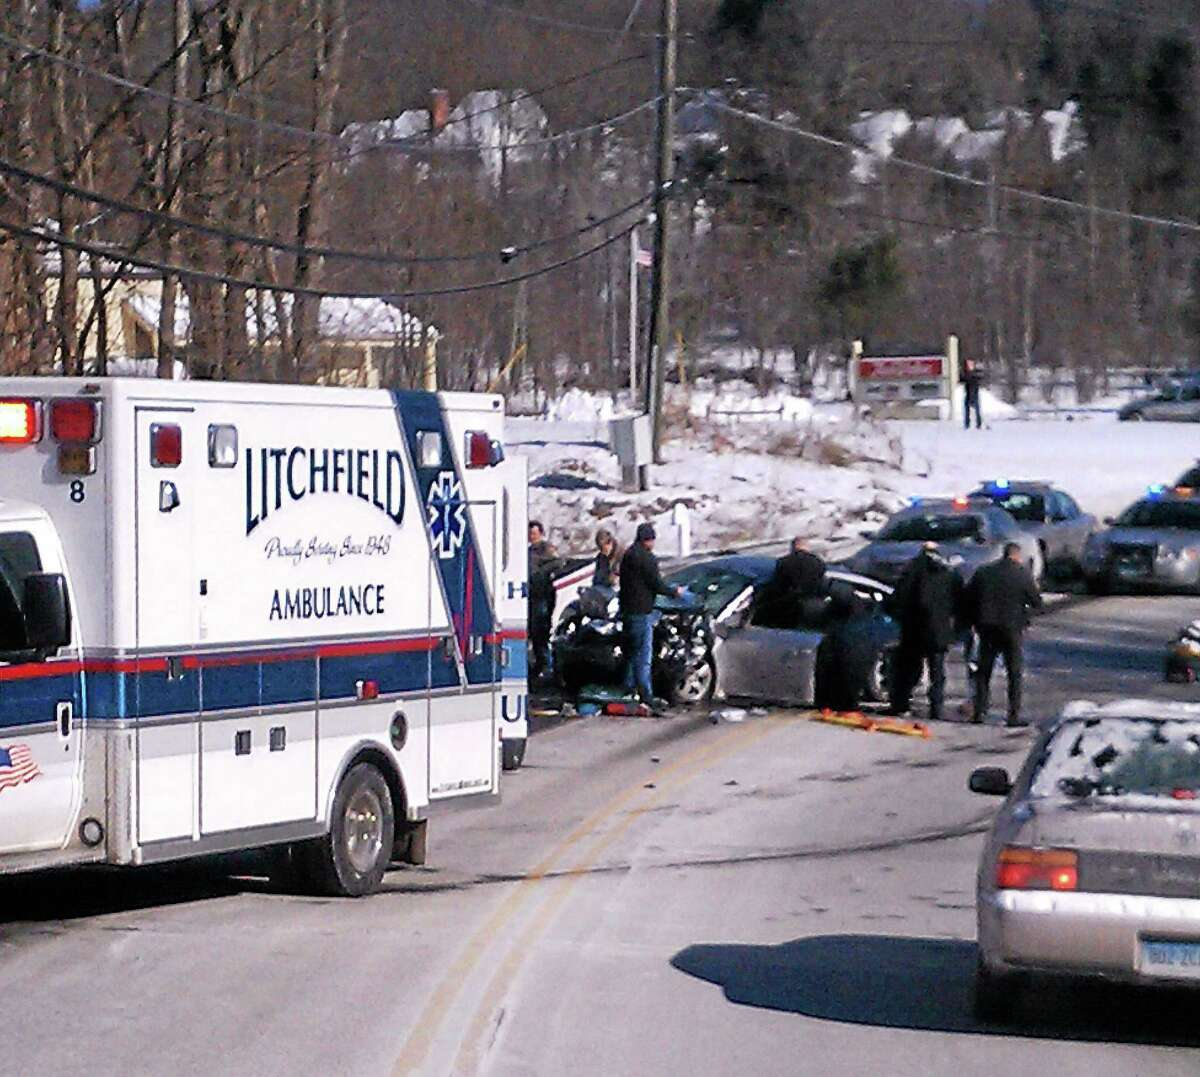 Emergency responders at the scene of a car crash on Route 202 in Litchfield Thursday.